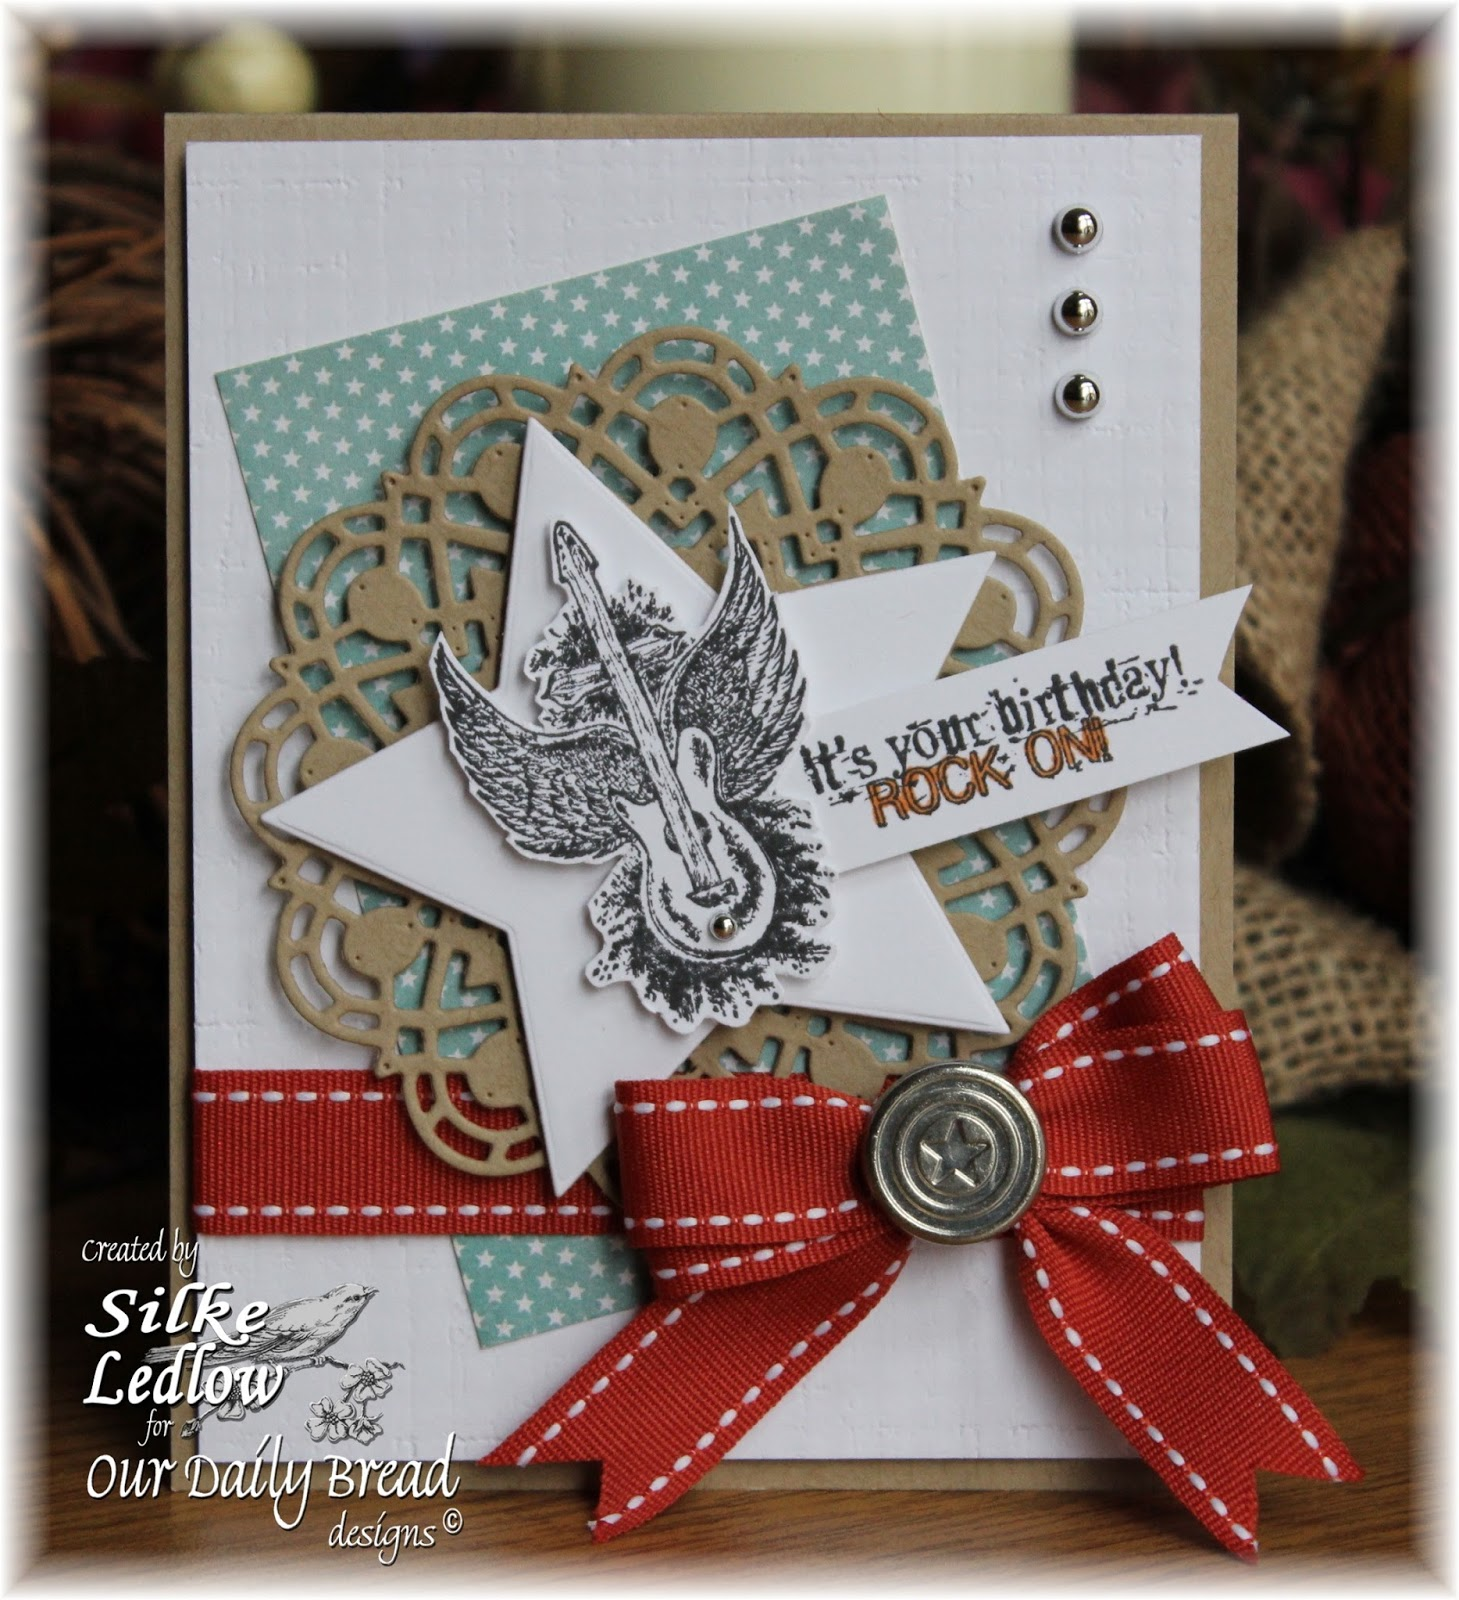 Stamps - Our Daily Bread Designs Rock Star, ODBD Sparkling Stars Dies, ODBD Custom Doily Die, ODBD Christmas Paper Collection 2014